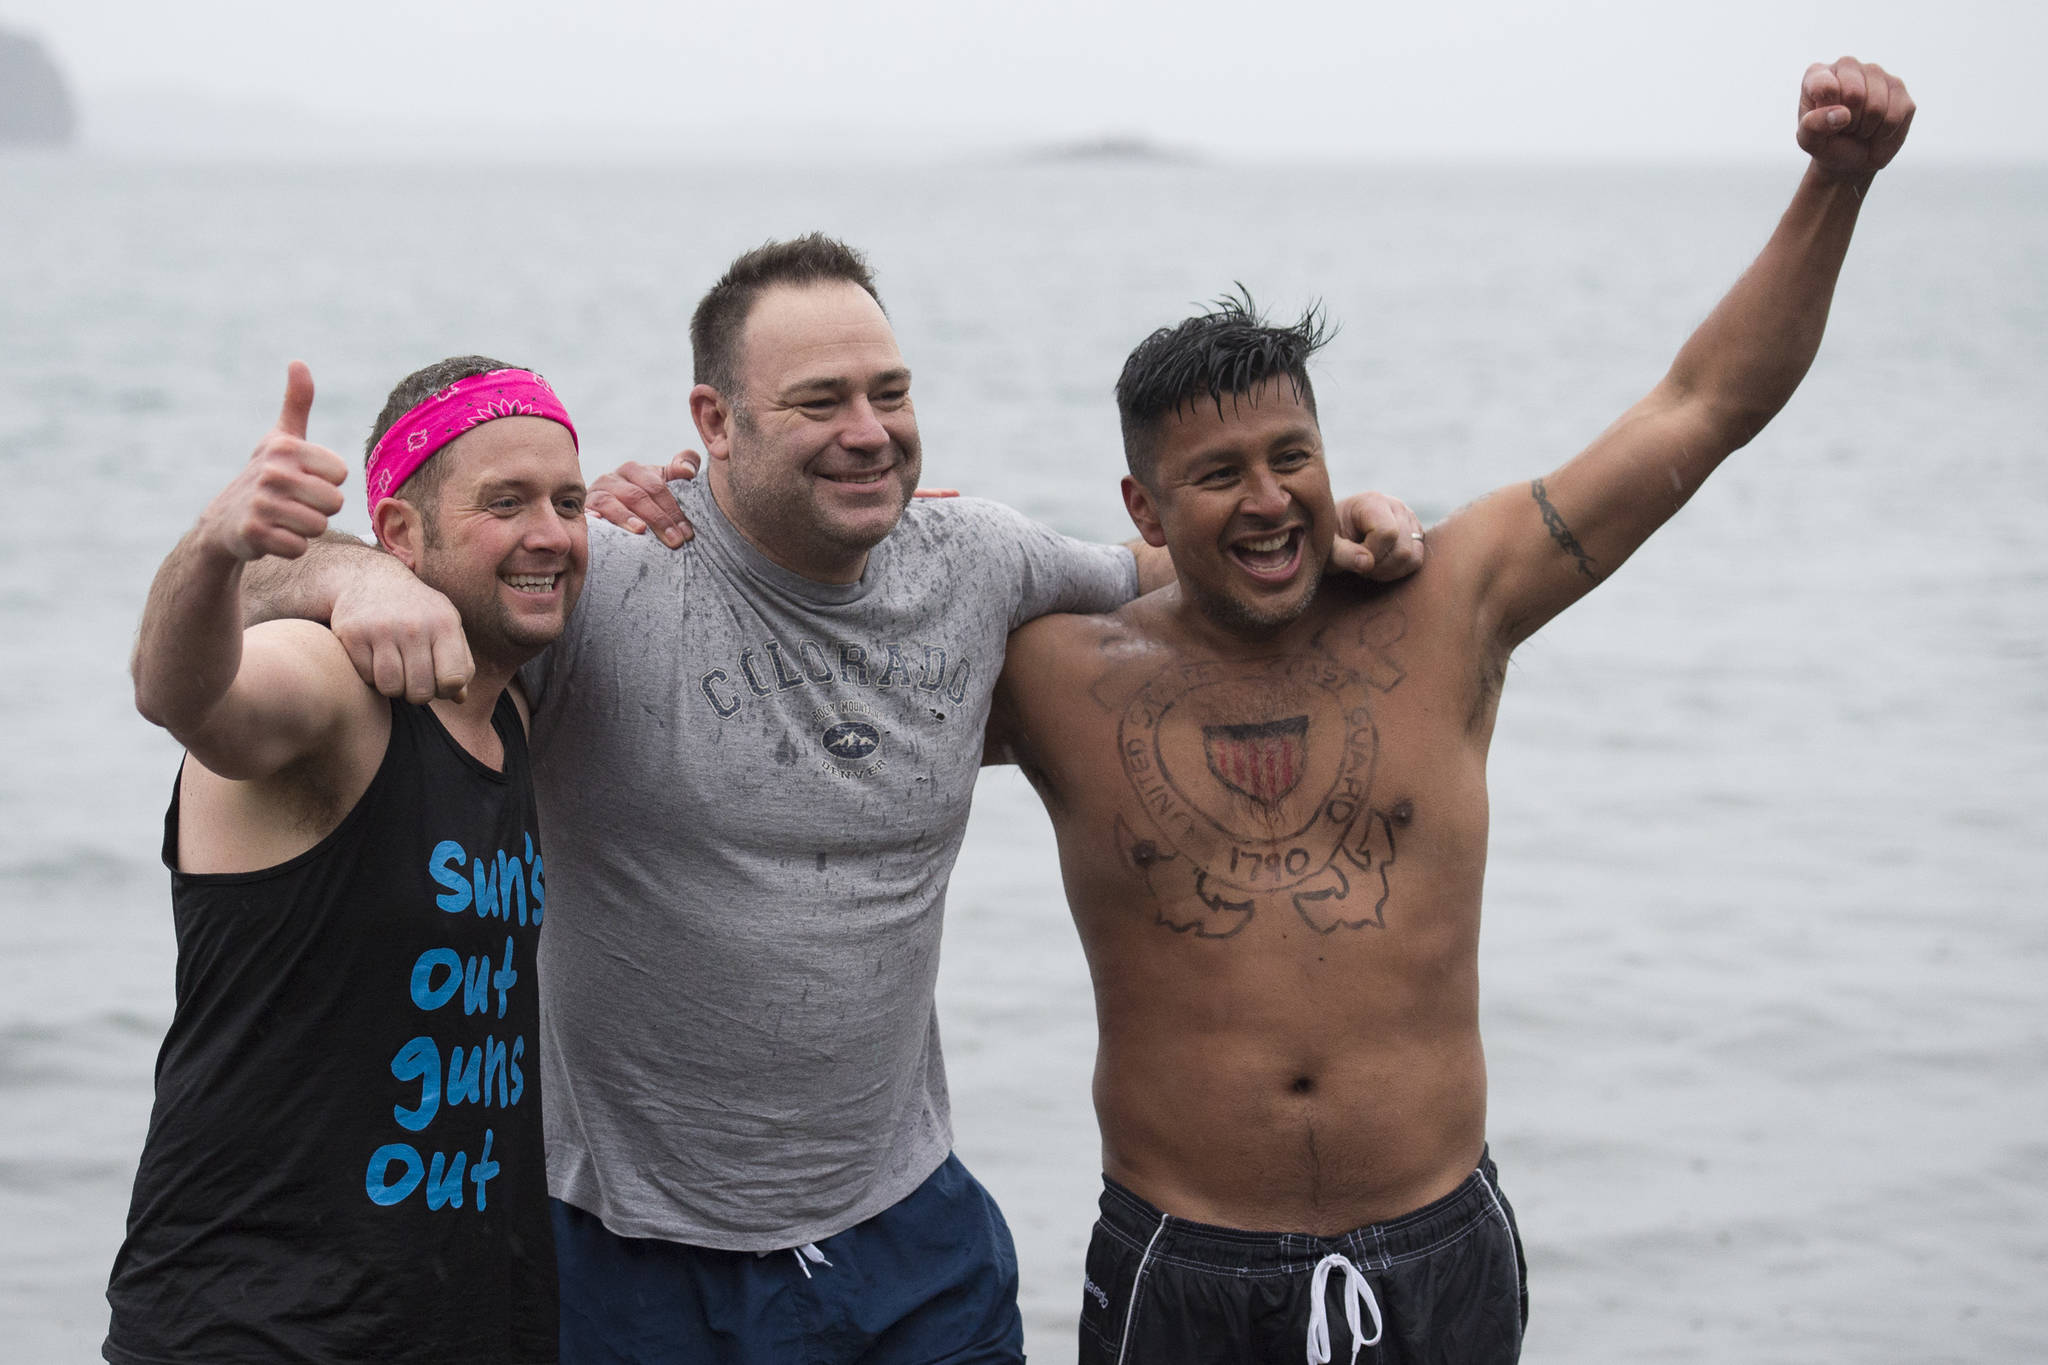 U.S. Coast Guard members John Dale, left, Chris Coutu, center, and Marvin Pena pose for a picture before taking to the frigid waters at Auke Bay Recreation Area for the annual Juneau Polar Bear Dip on Tuesday, Jan. 1, 2019. Nearly 200 people took the plunge to start off the new year. (Michael Penn | Juneau Empire)